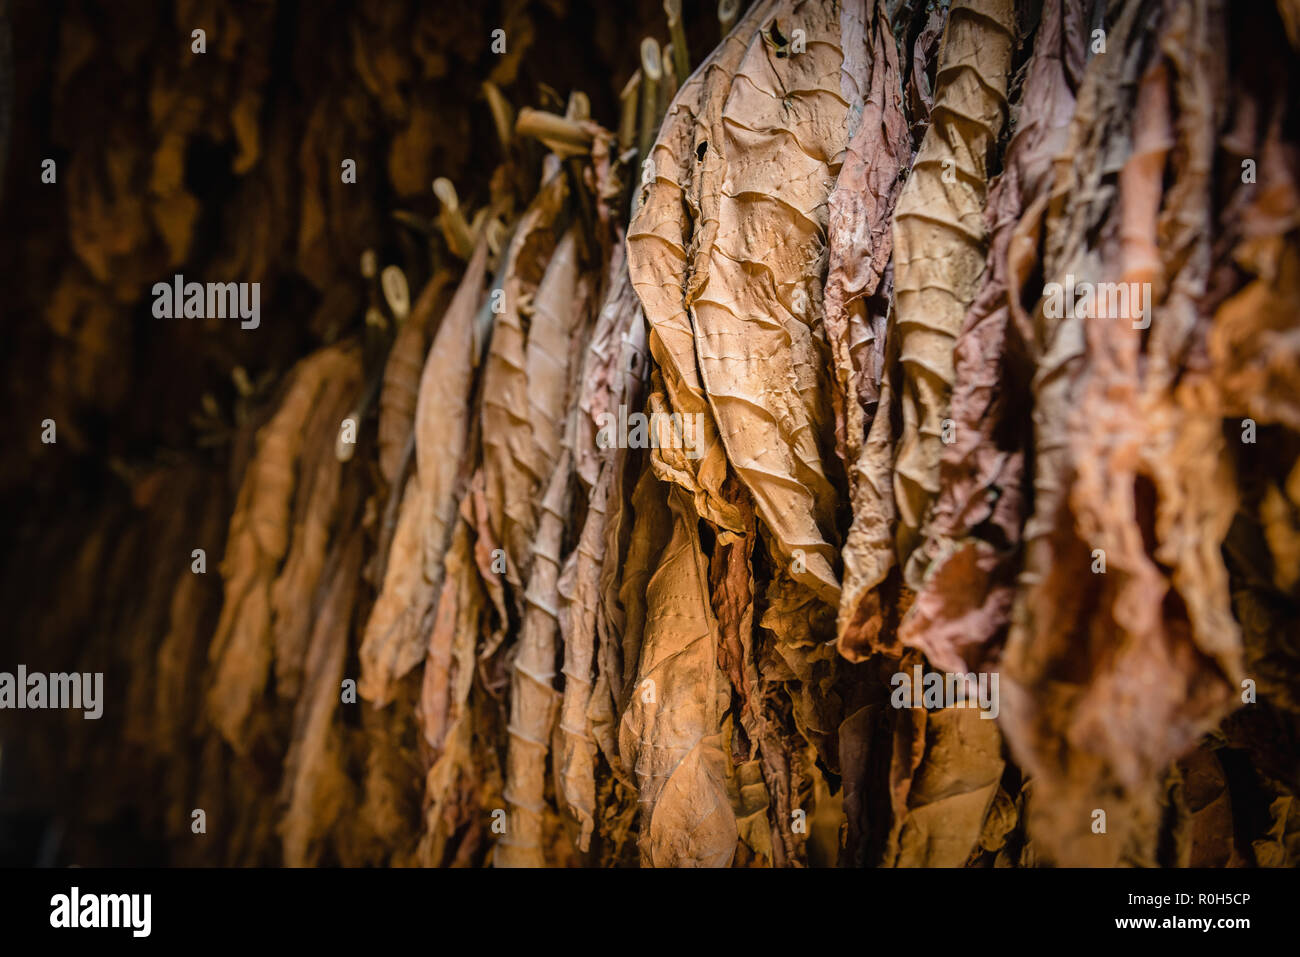 Tobacco leaves being dried in a farm shed - Stock Image